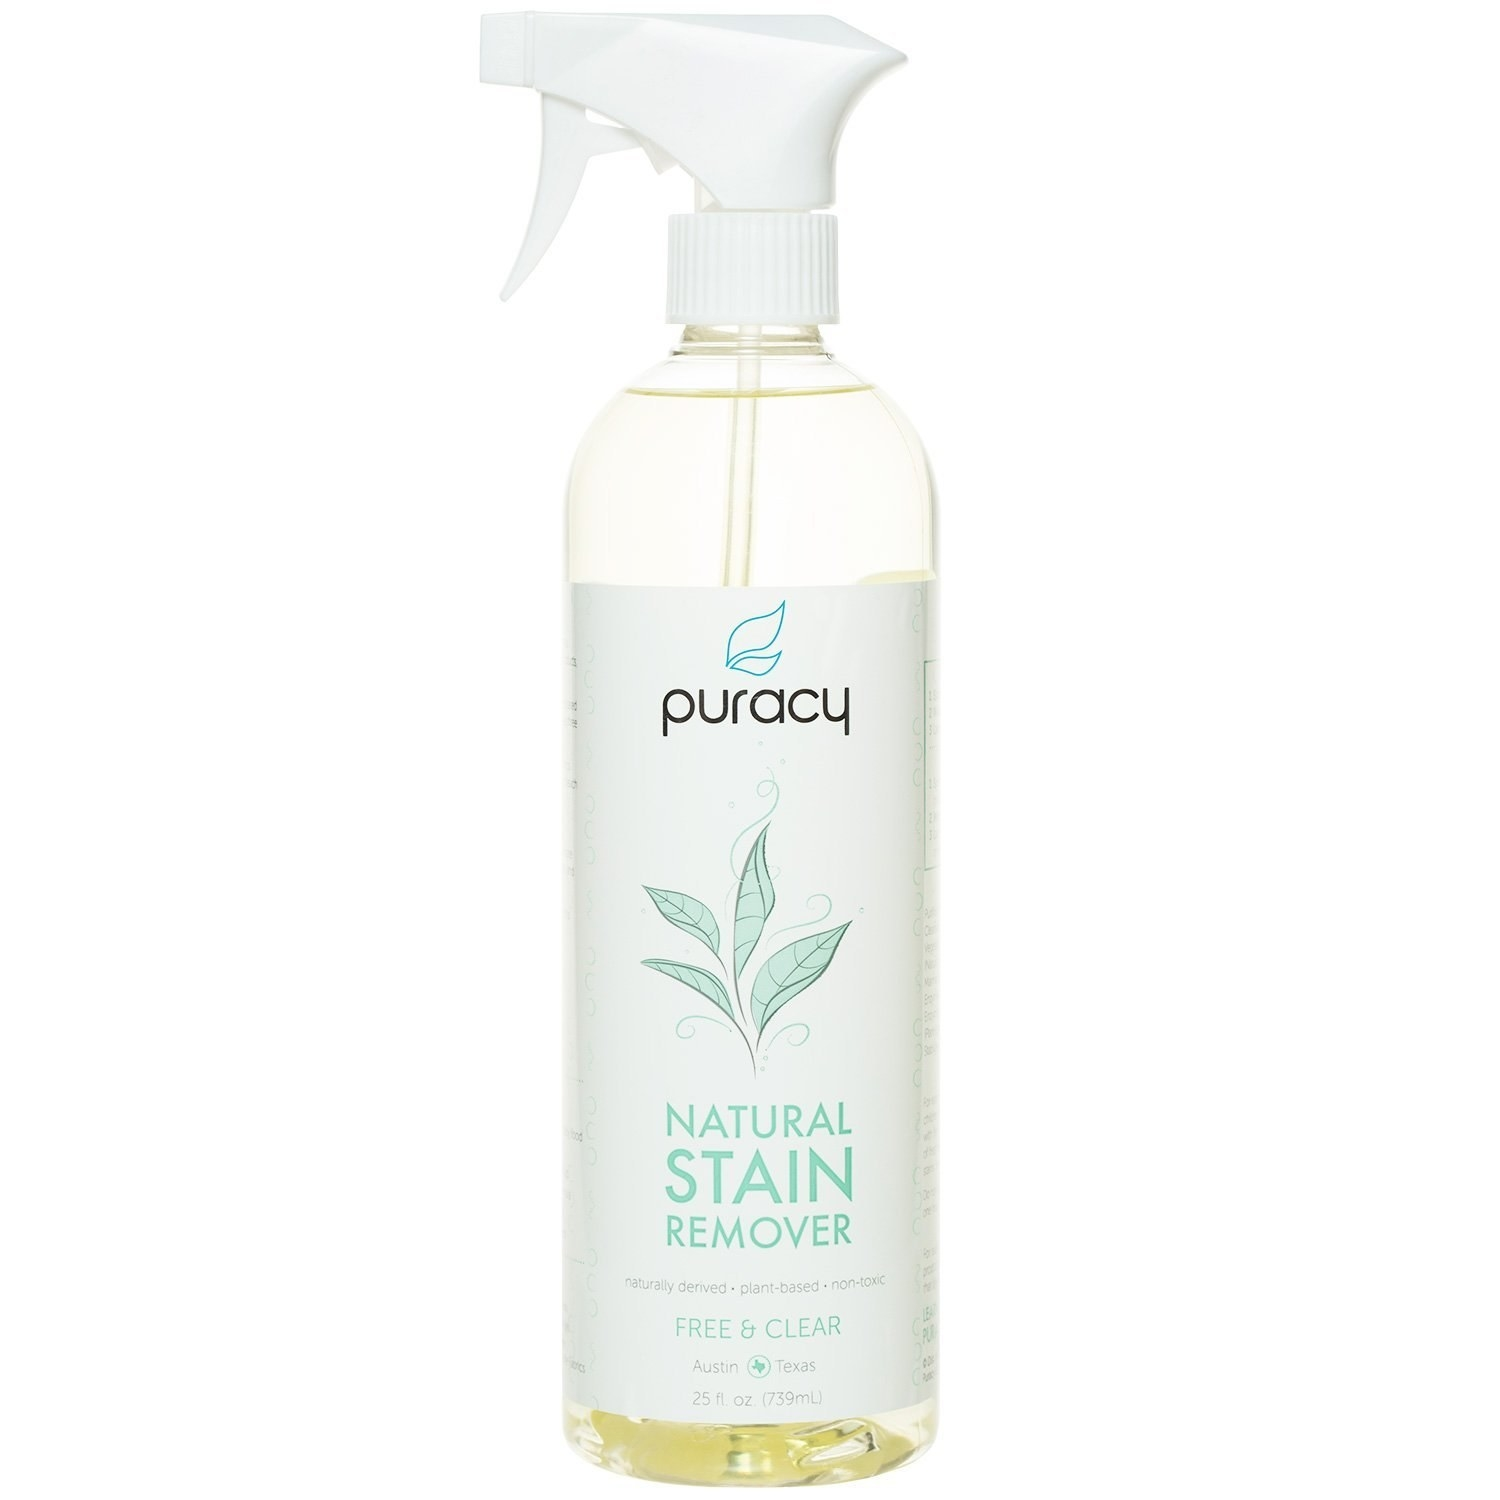 17 Of The Best Stain Removers You Can Get On